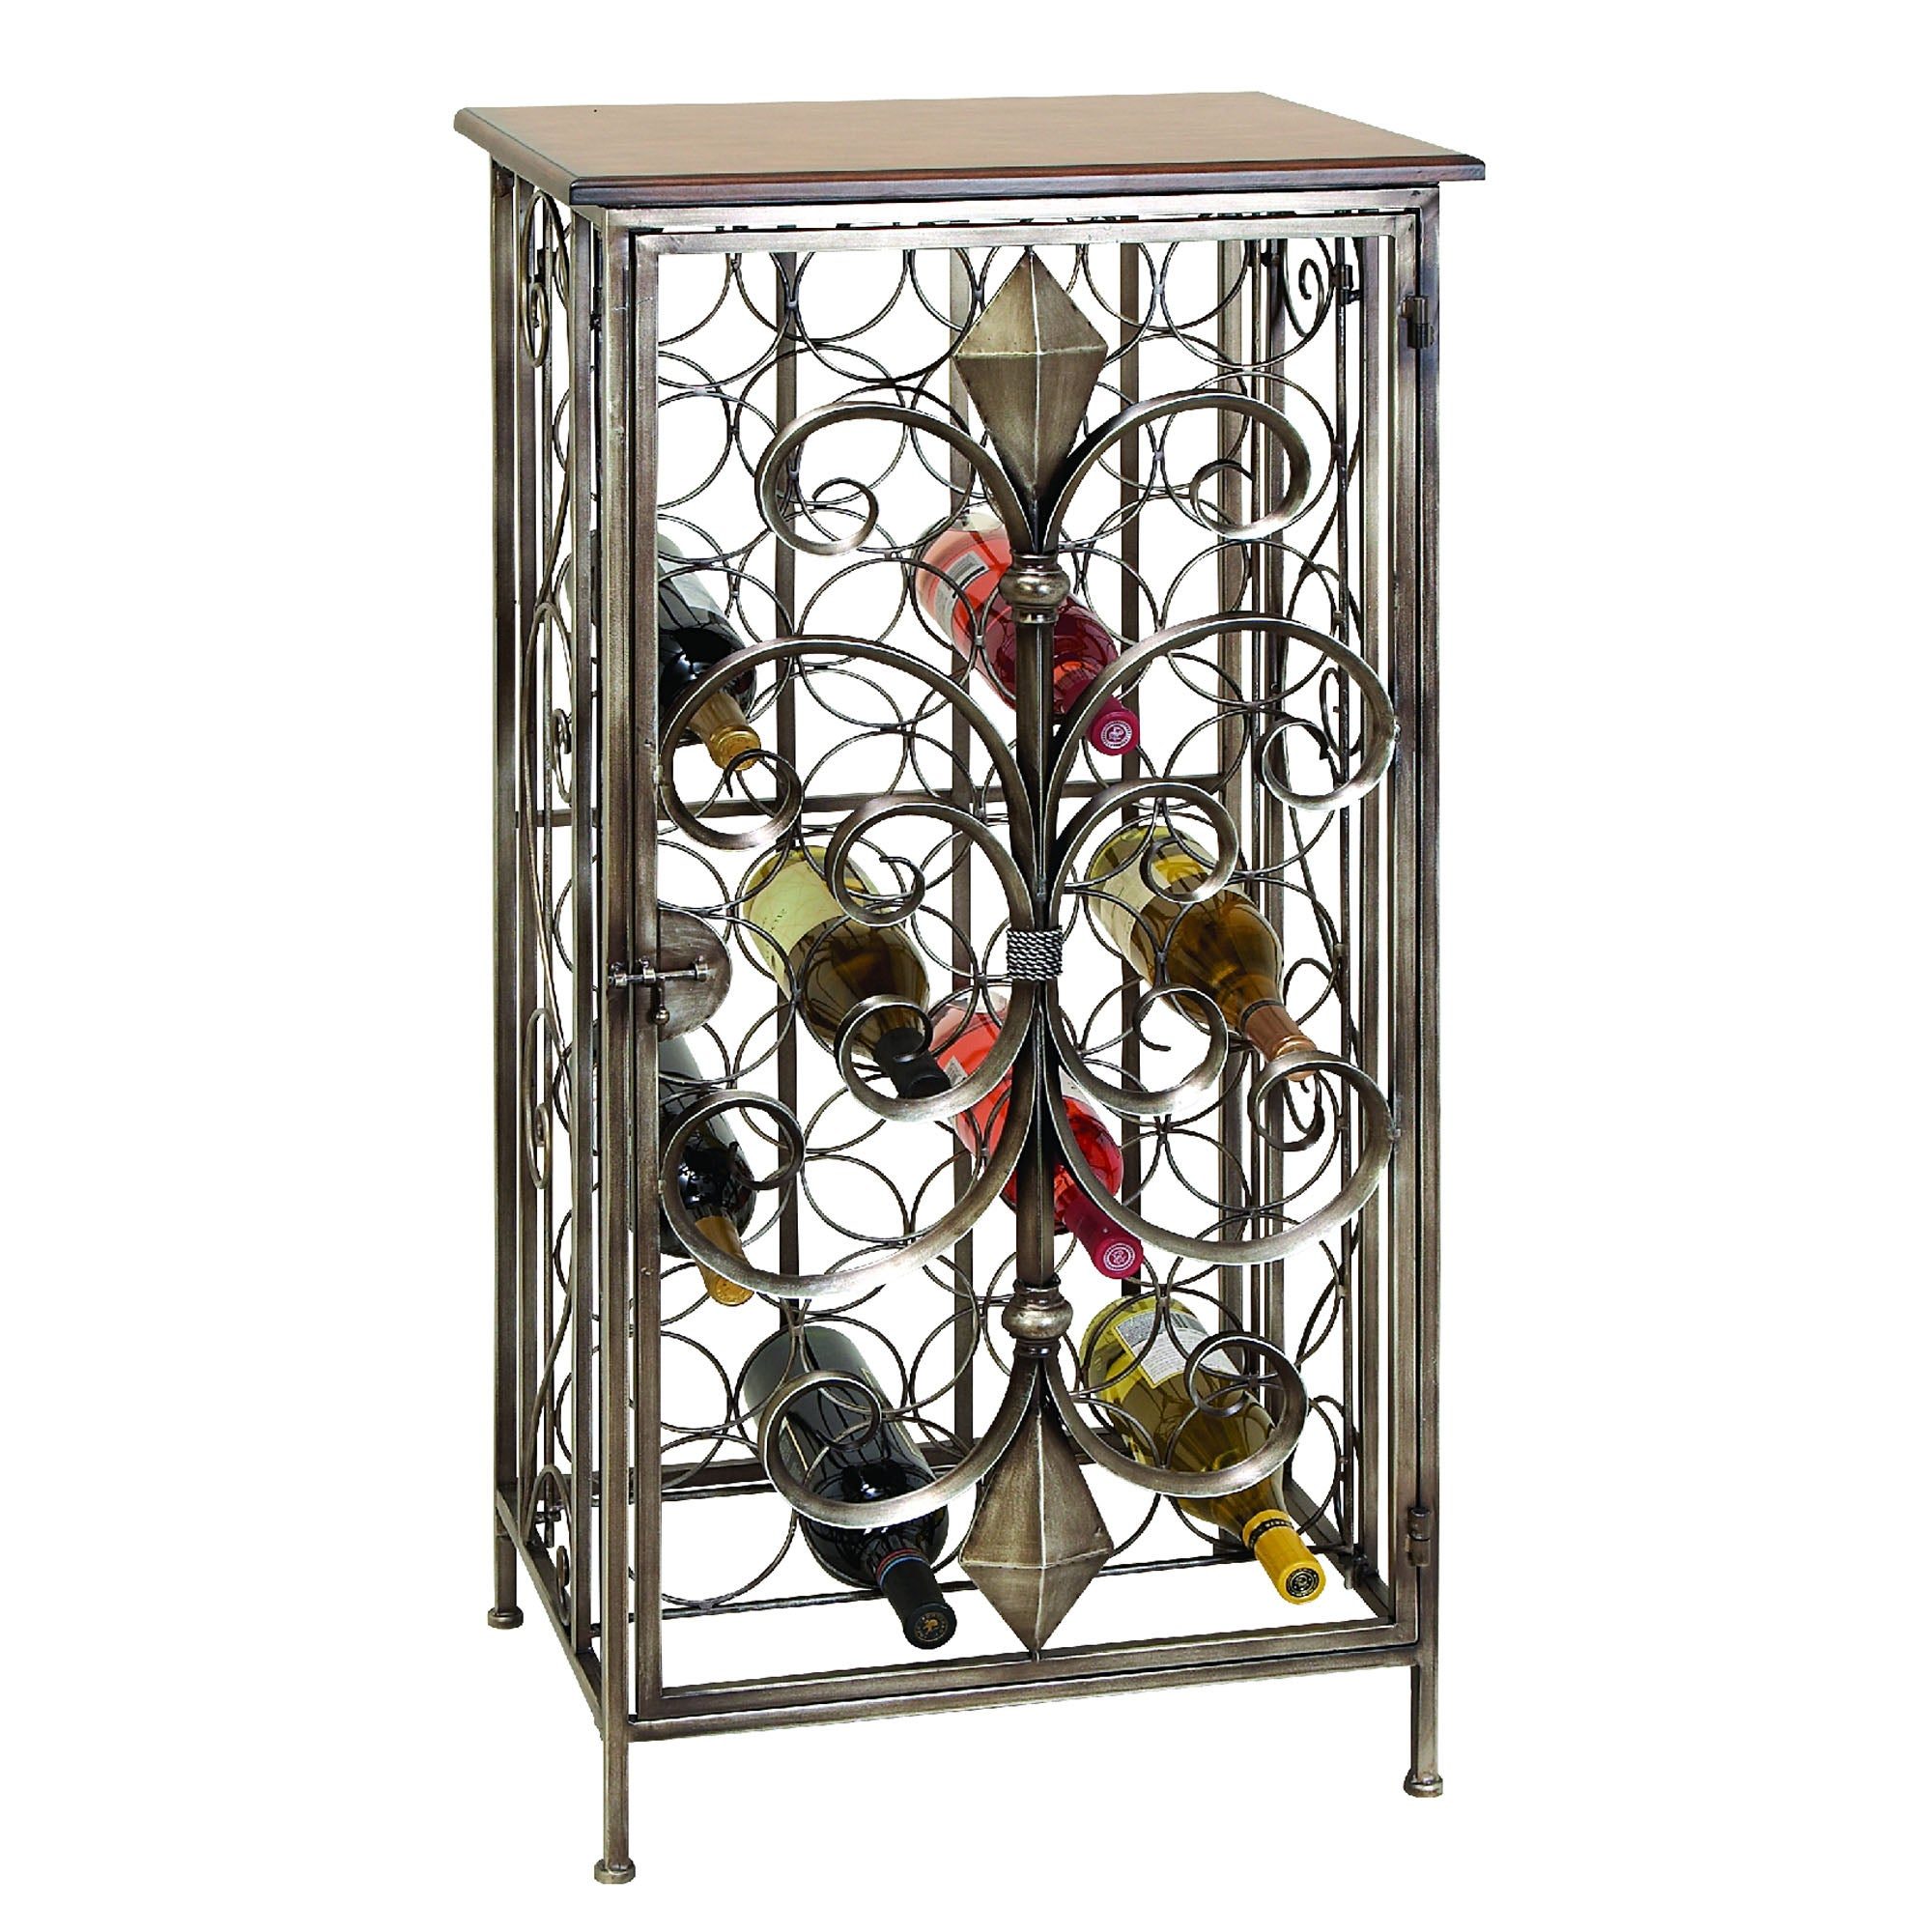 Casa Cortes Wrought Iron 32-bottle Wine Holder Rack - Thumbnail 0